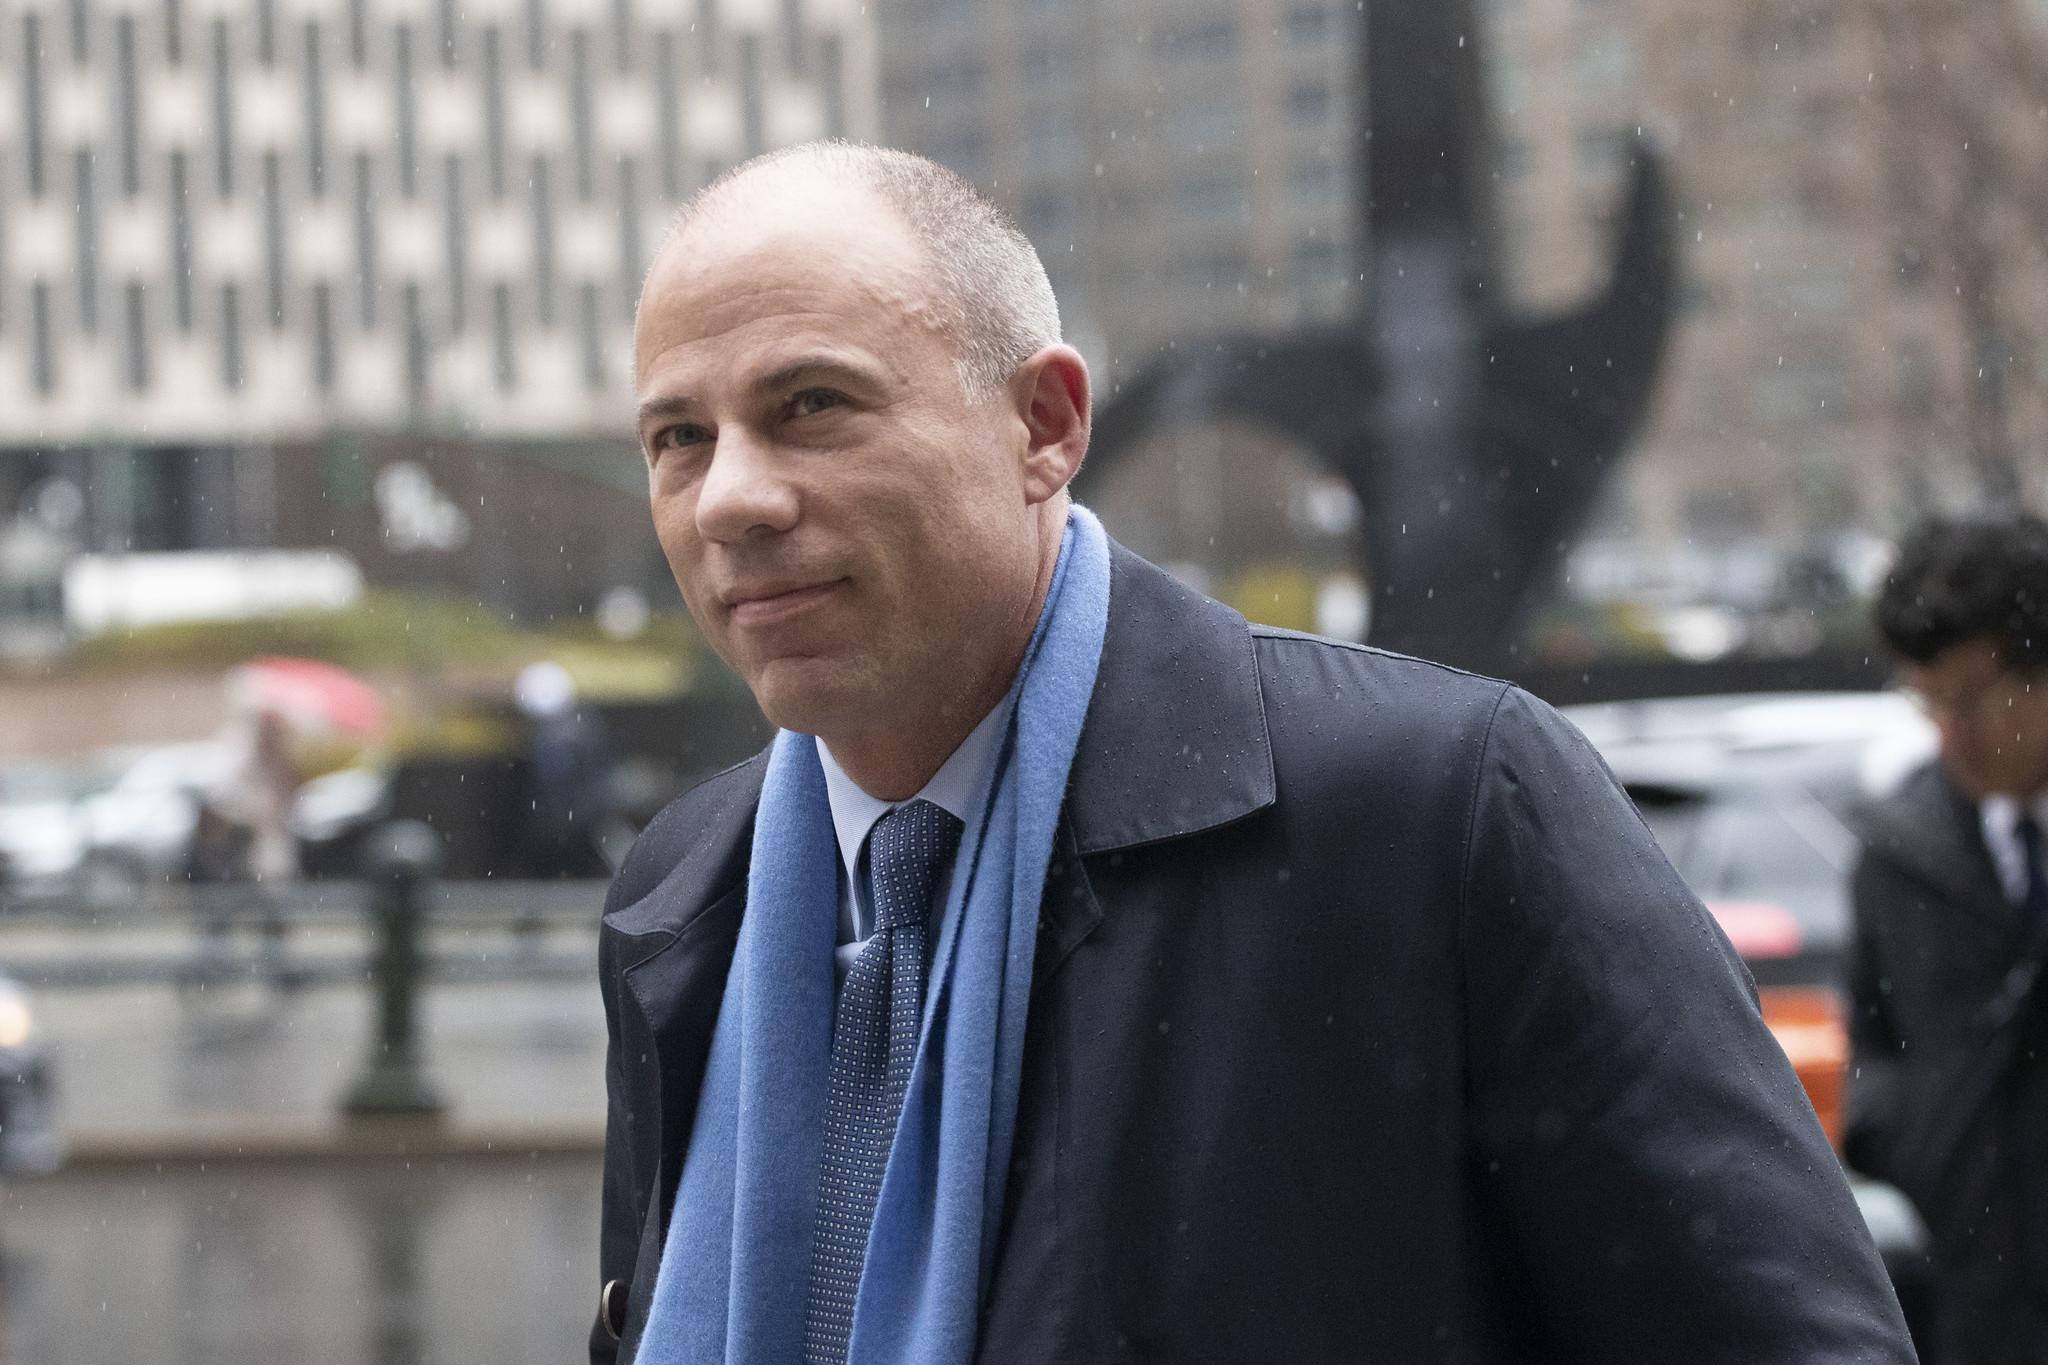 Michael Avenatti guilty on all counts, jury says